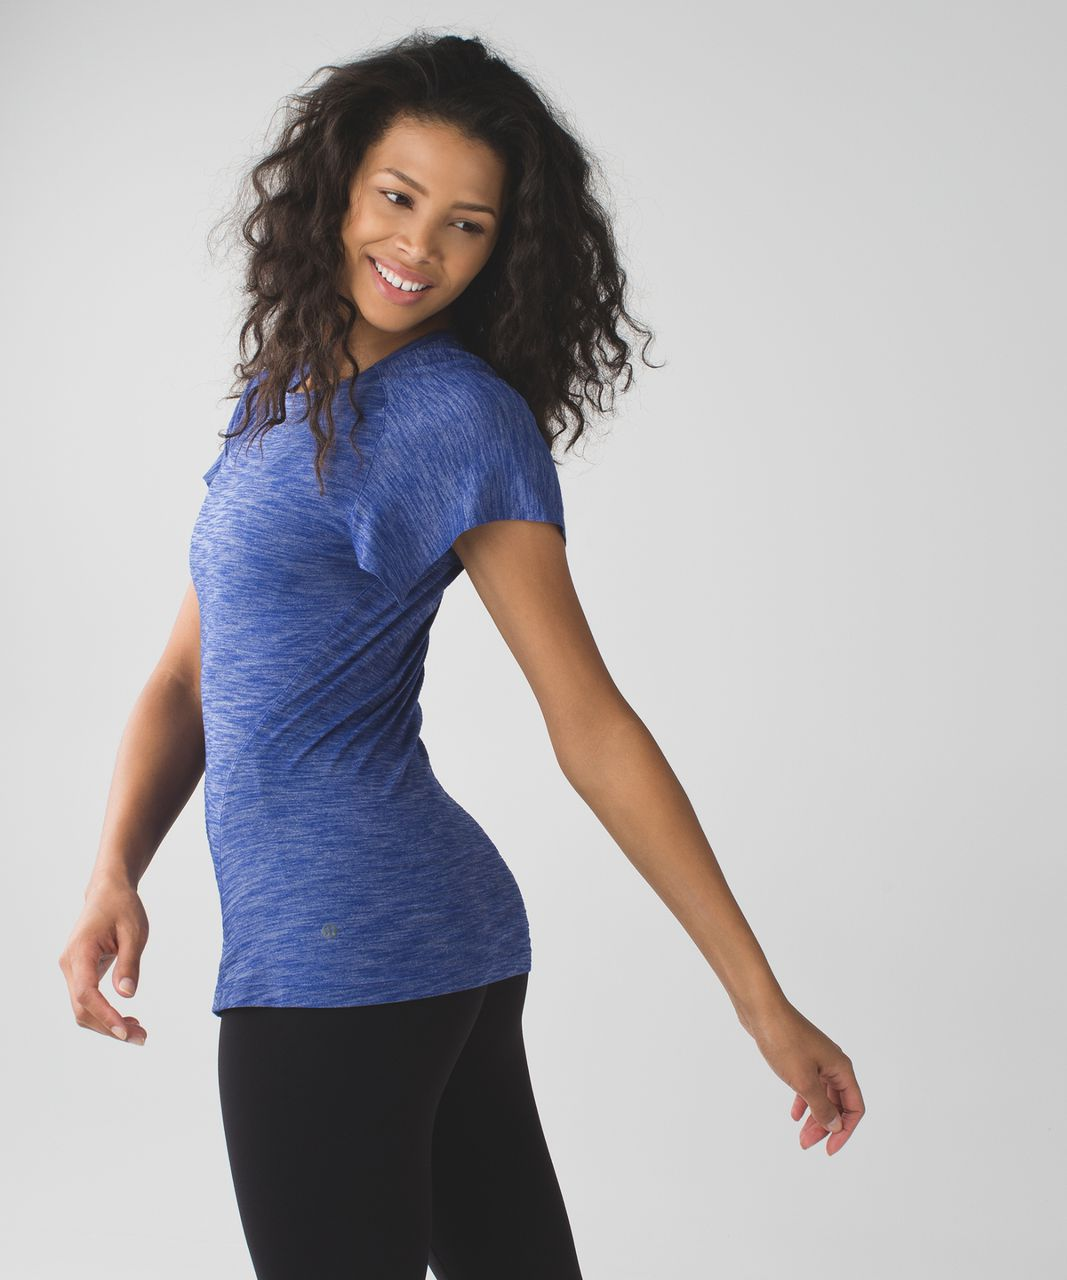 Lululemon &go Take-Off Tee - Heathered Sapphire Blue